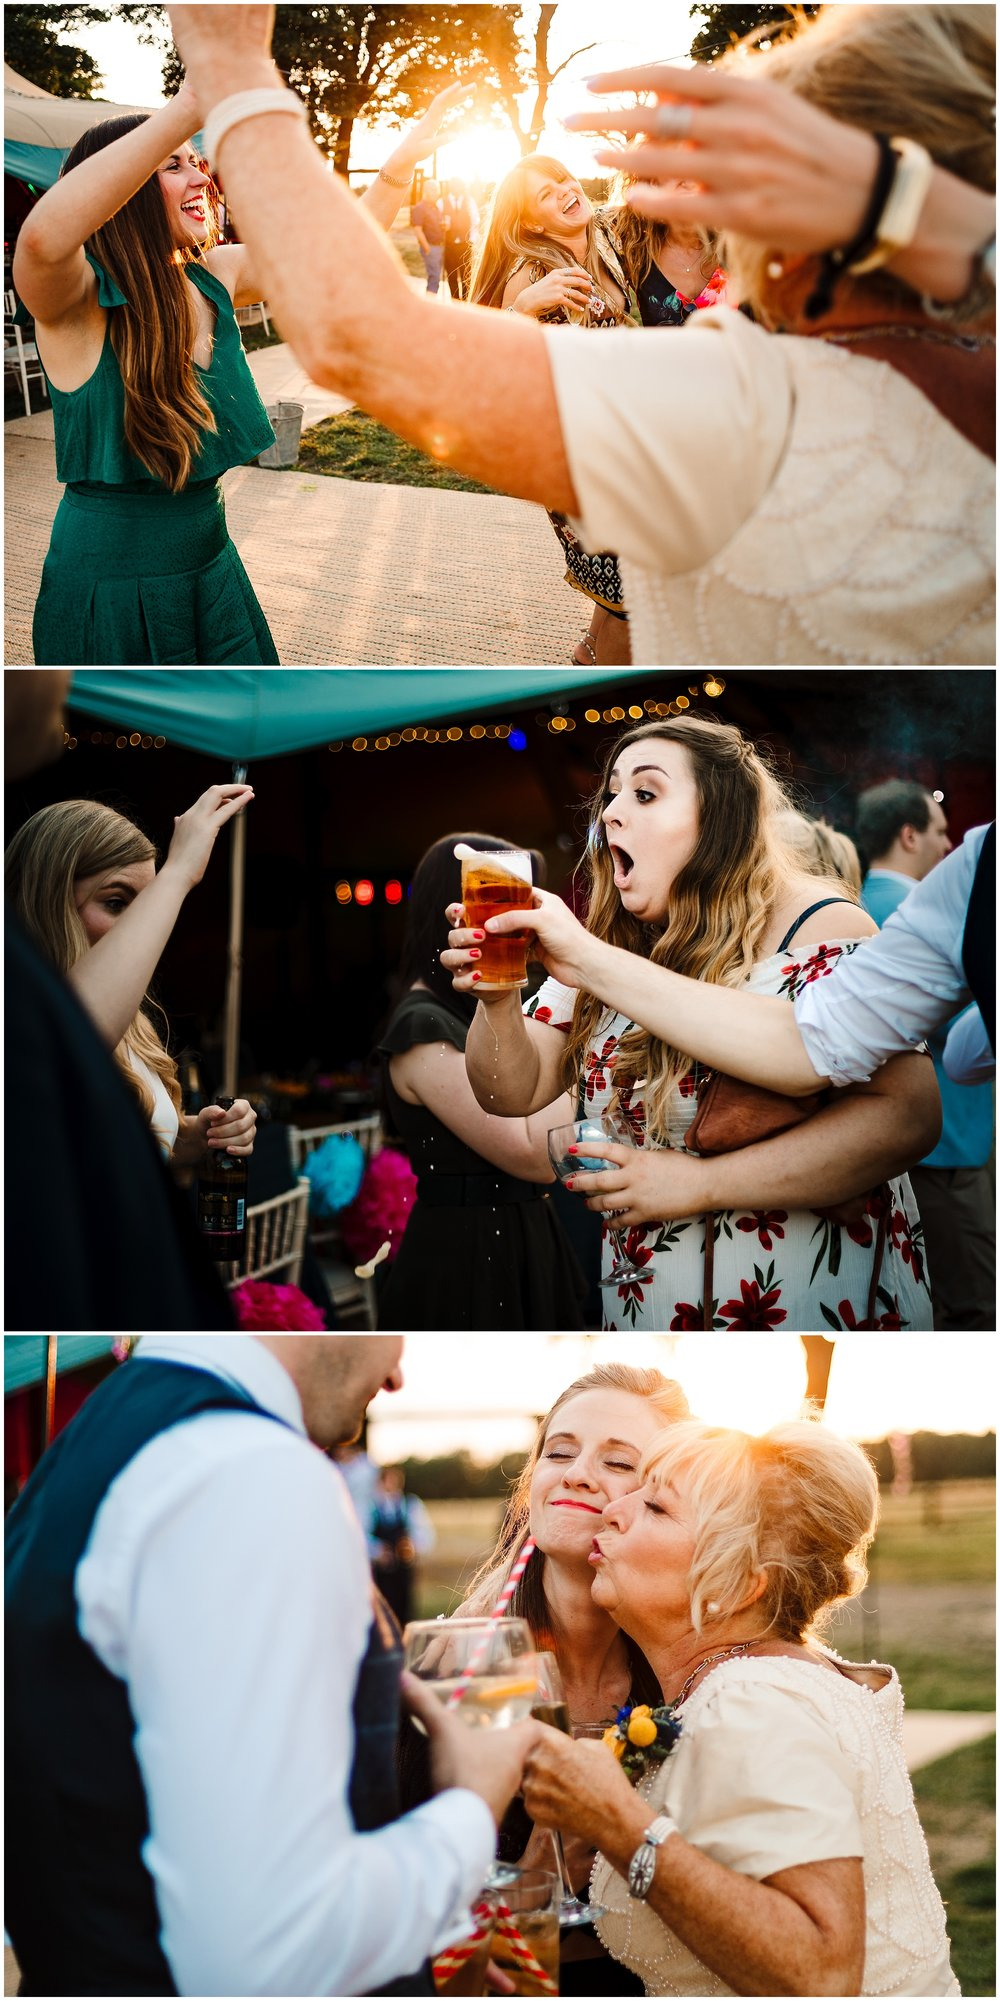 guests having fun and dancing at a tipi wedding at sunset